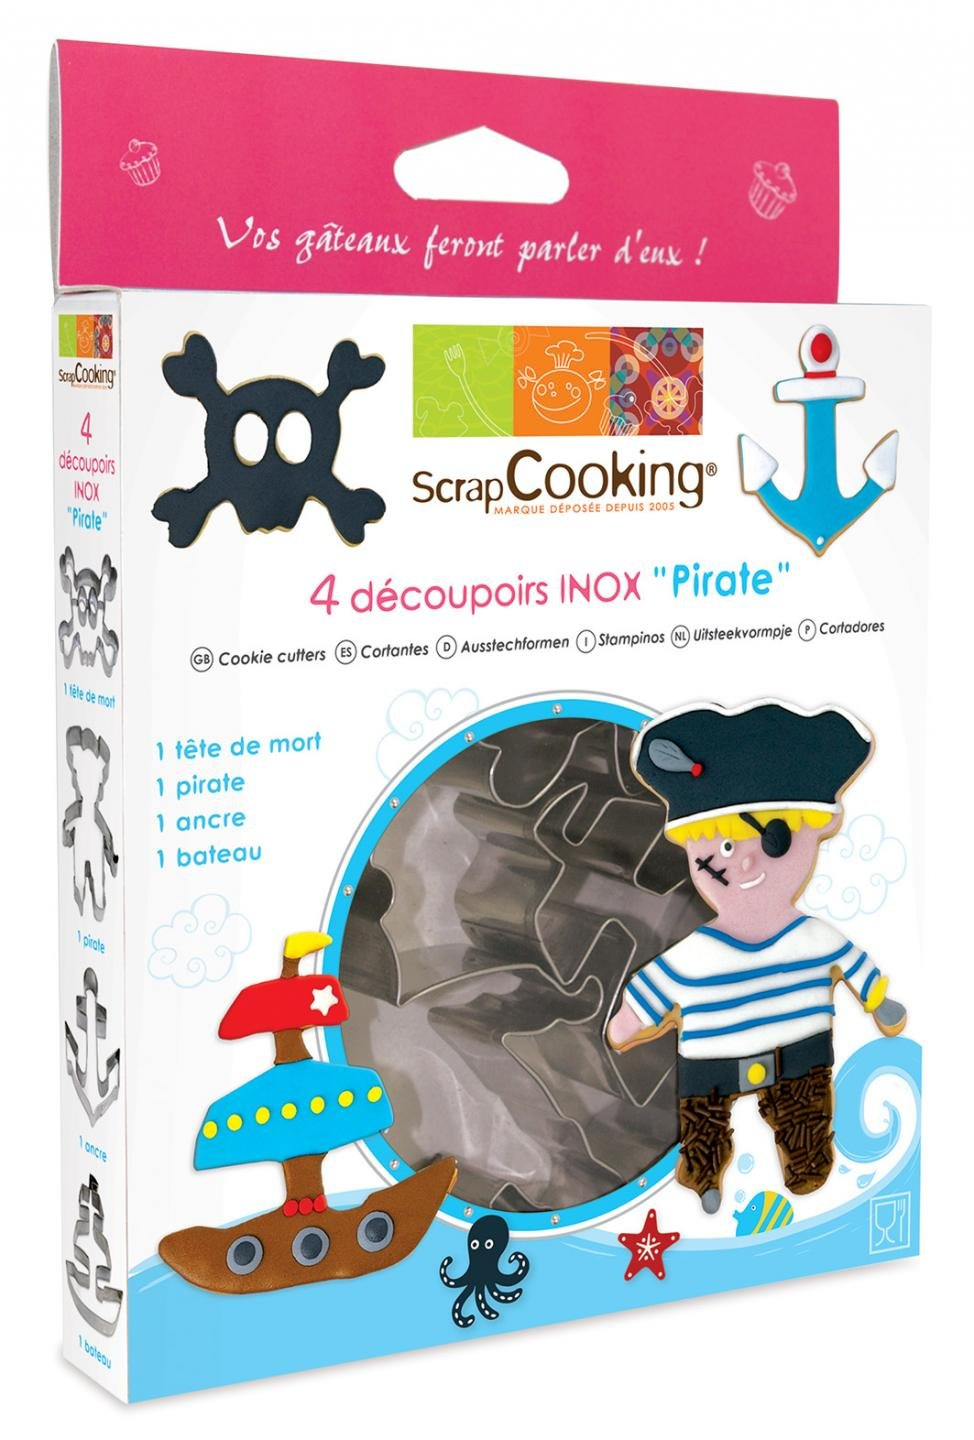 ScrapCooking Pirate Cutters, Stainless Steel, Box of 4